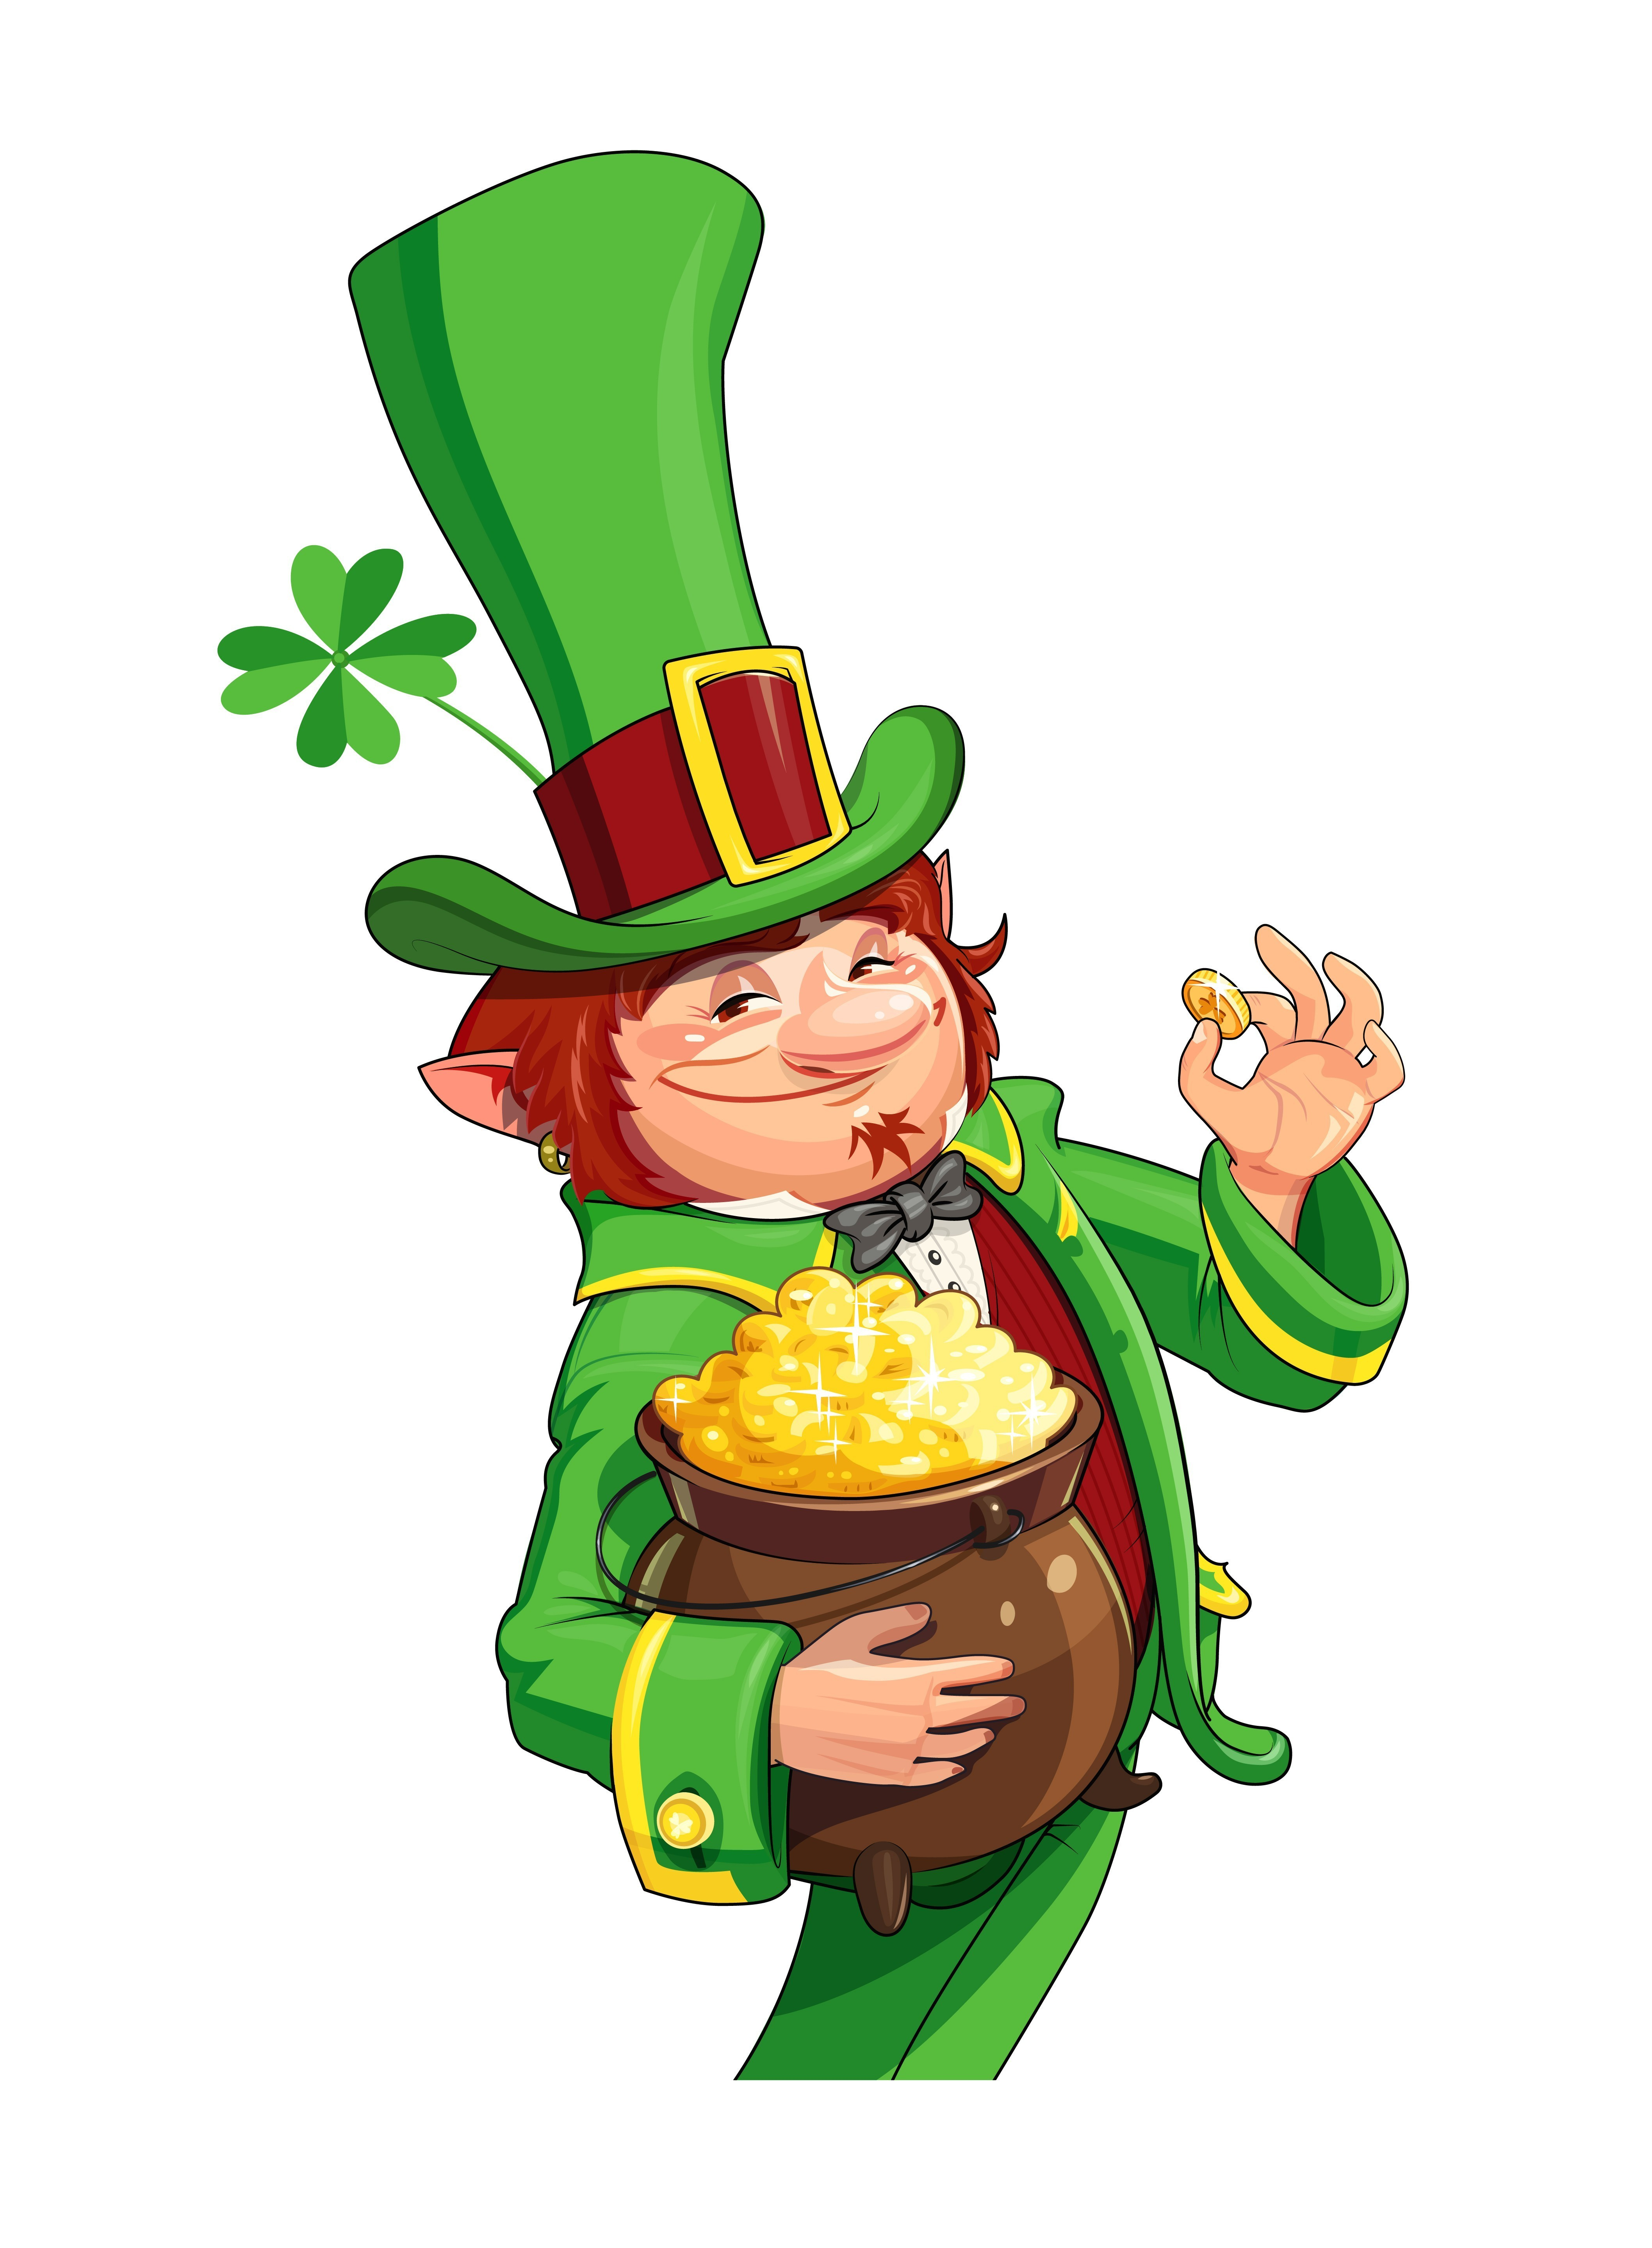 Adoptable Power Orb for Leprechaun